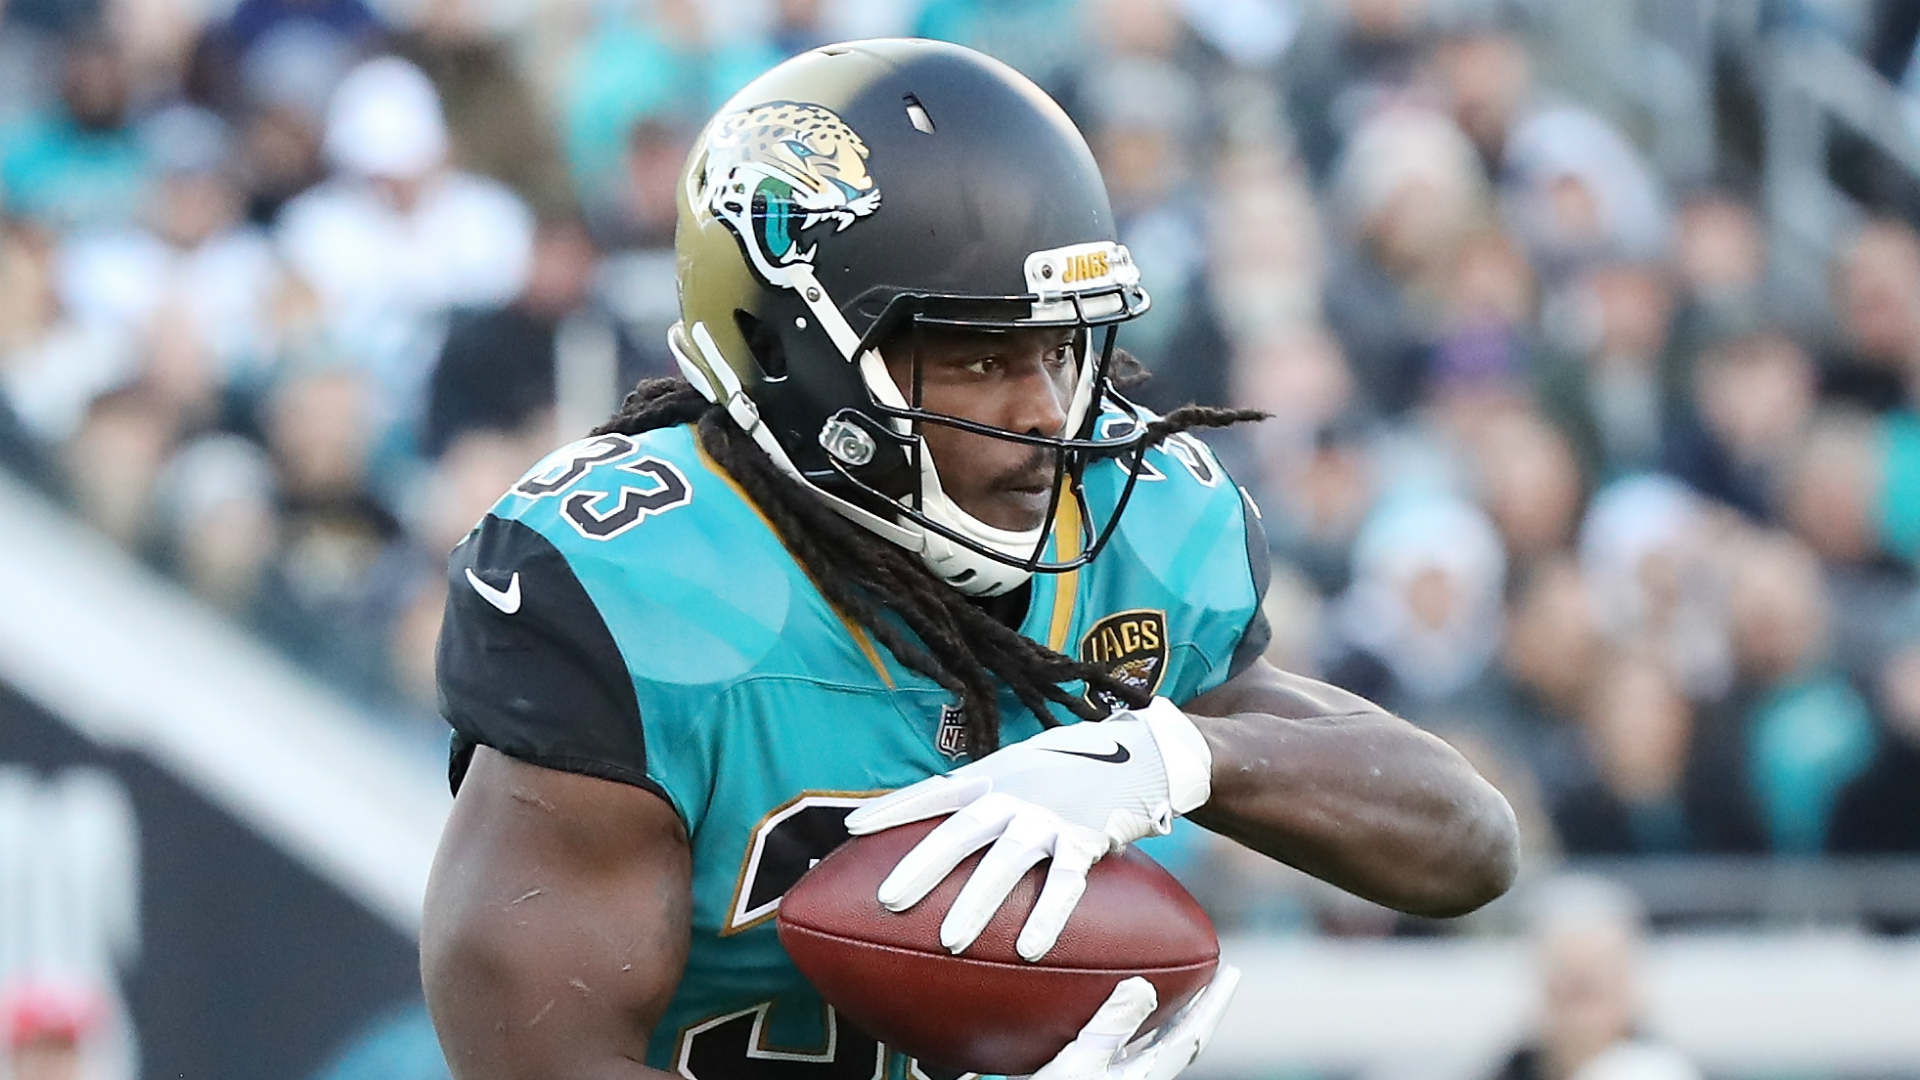 Veeva systems inc veev cmo sells 934 shares of stock buffalo bills sign running back chris ivory to 2 year deal biocorpaavc Image collections